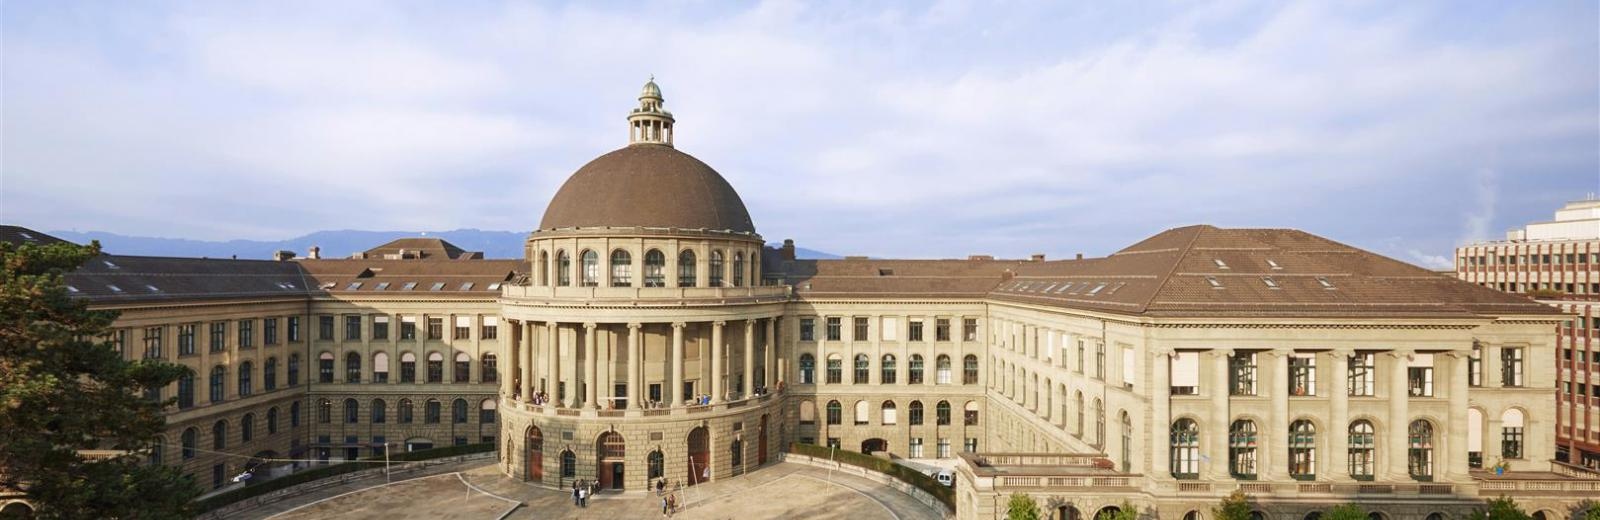 Main building at ETH Zurich